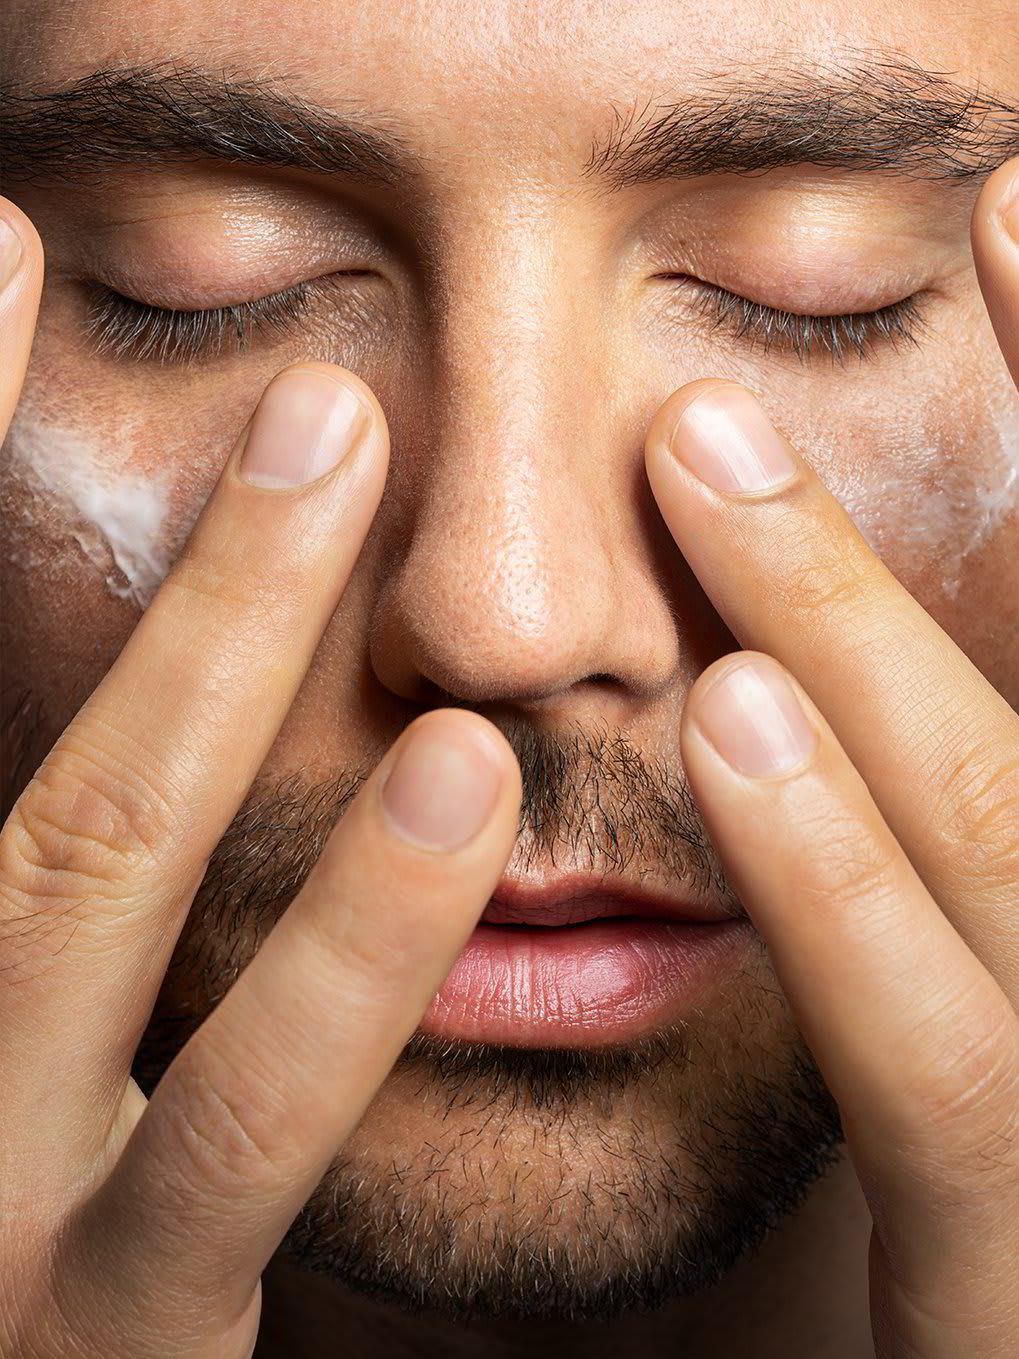 A closeup of a man applying skin care product to his face